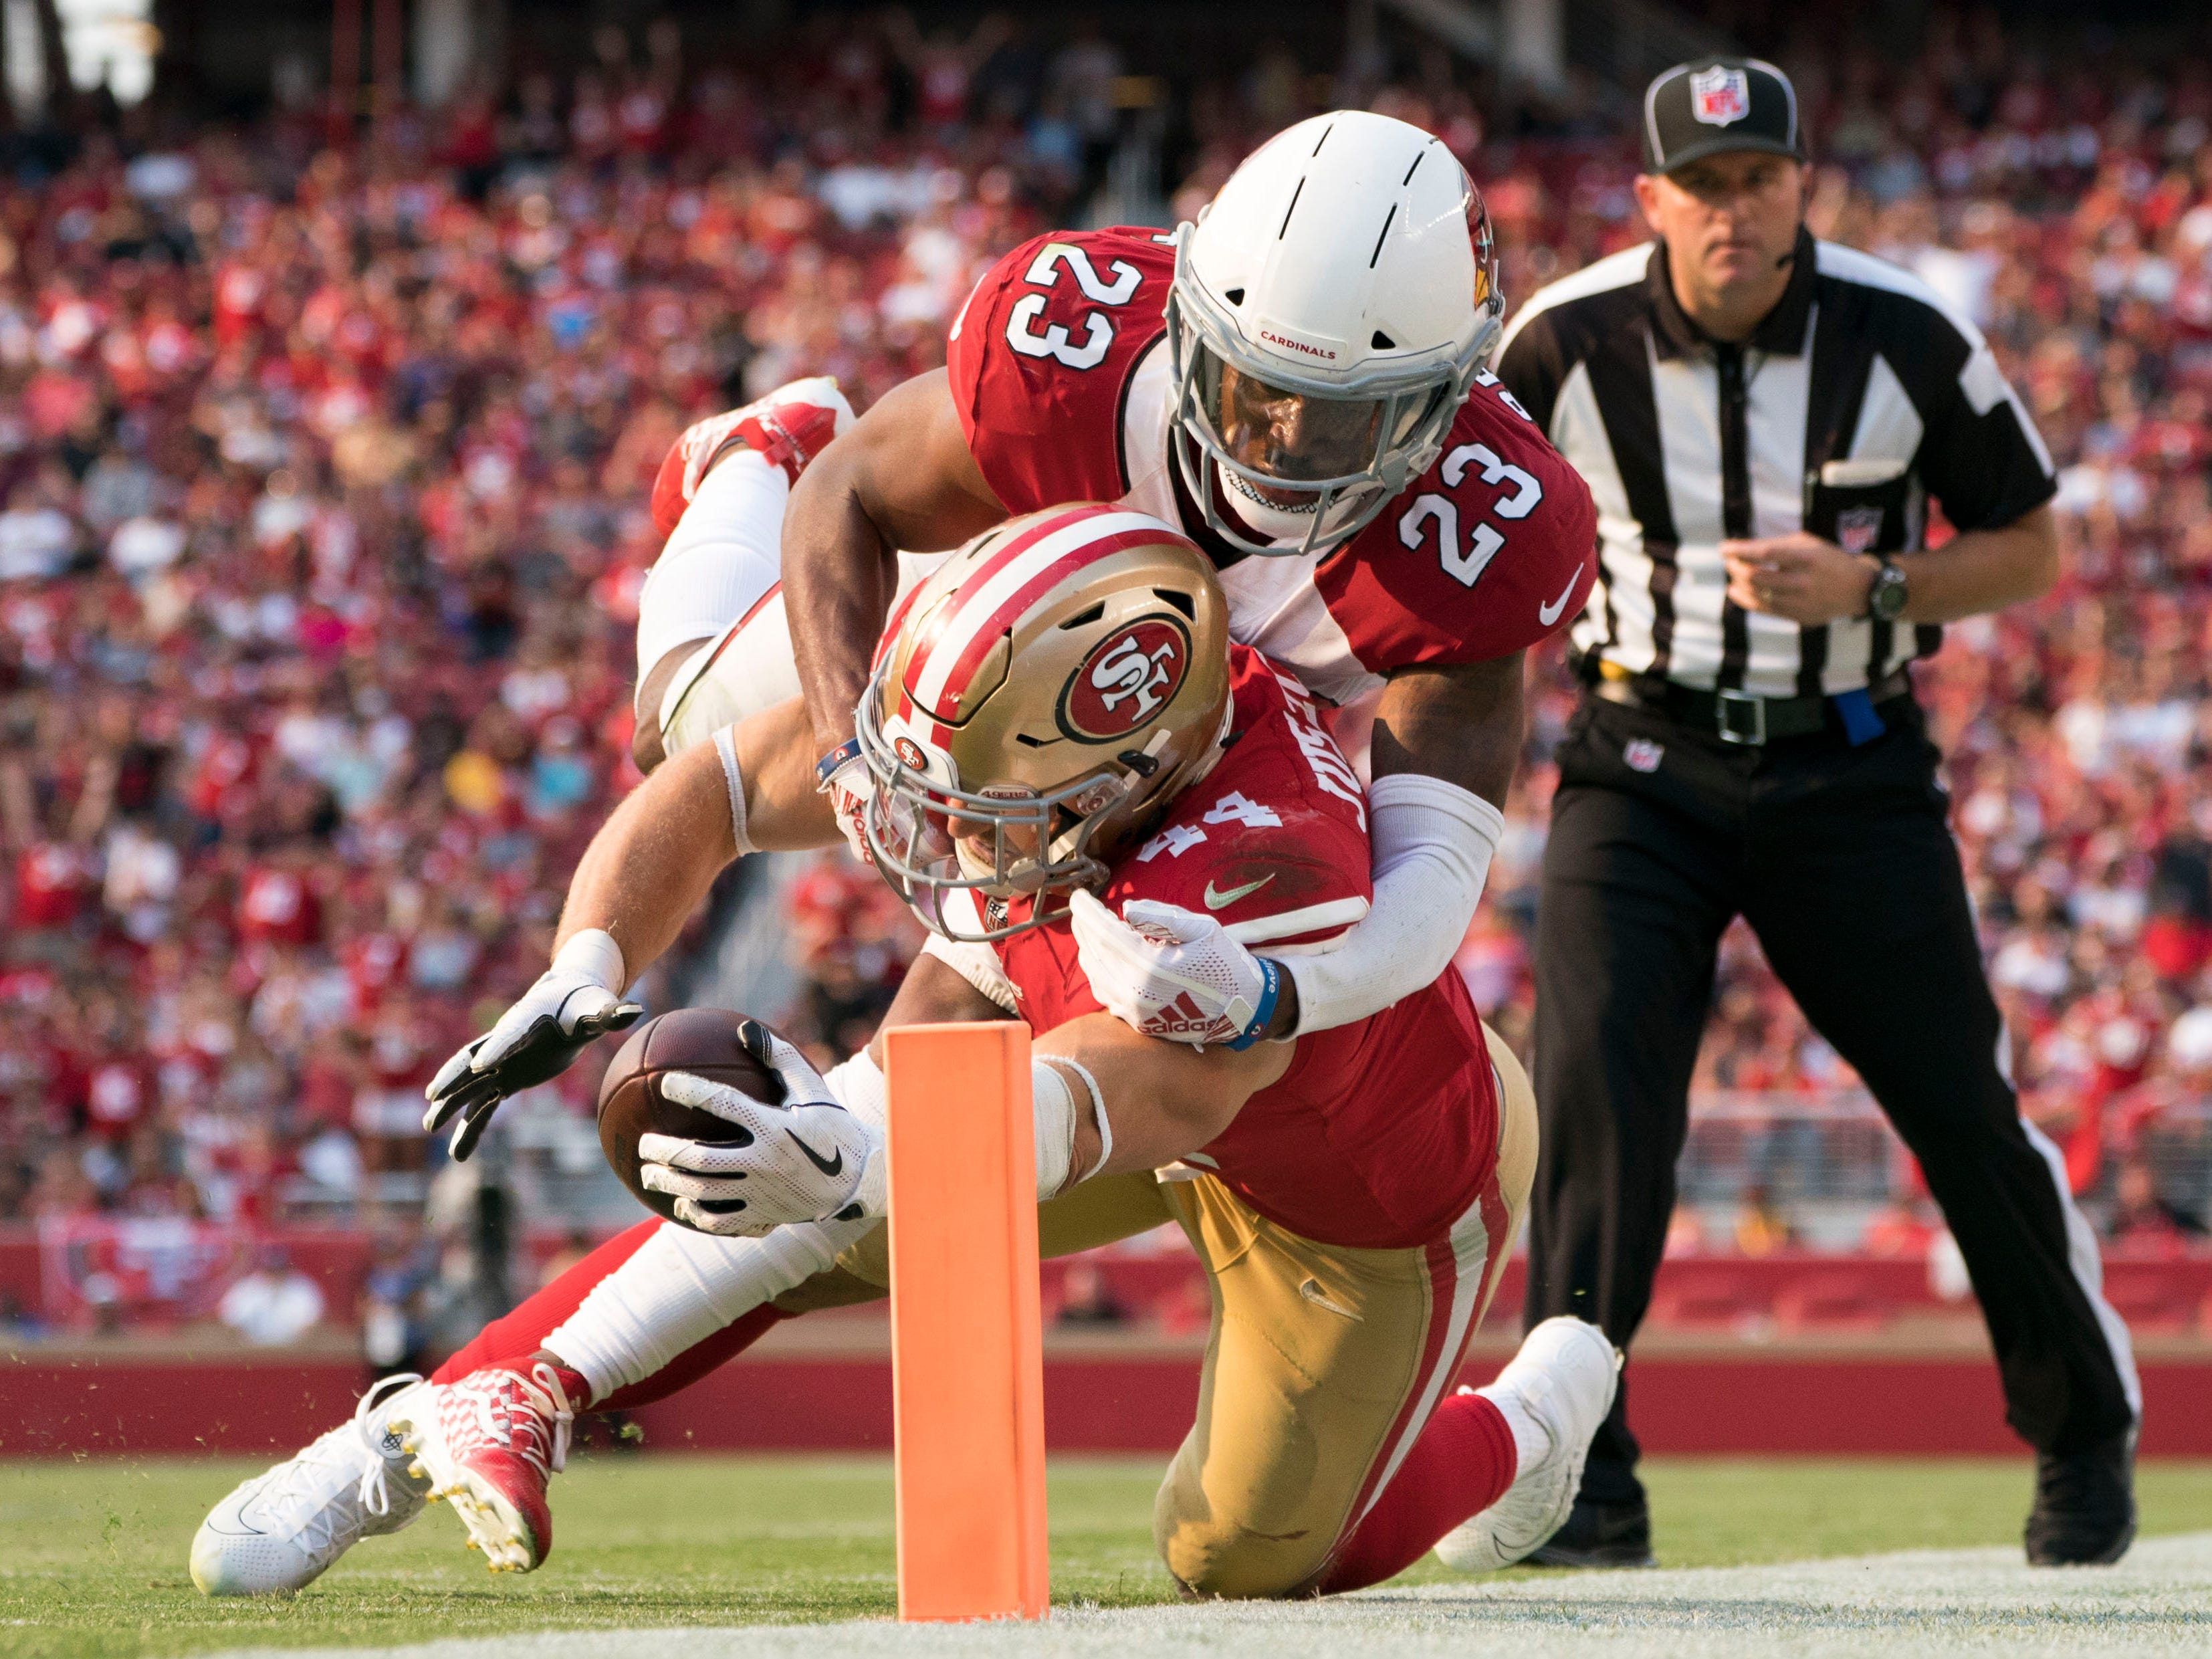 October 7, 2018; Santa Clara, CA, USA; San Francisco 49ers running back Kyle Juszczyk (44) is tackled by Arizona Cardinals defensive back Bene Benwikere (23) during the fourth quarter at Levi's Stadium.